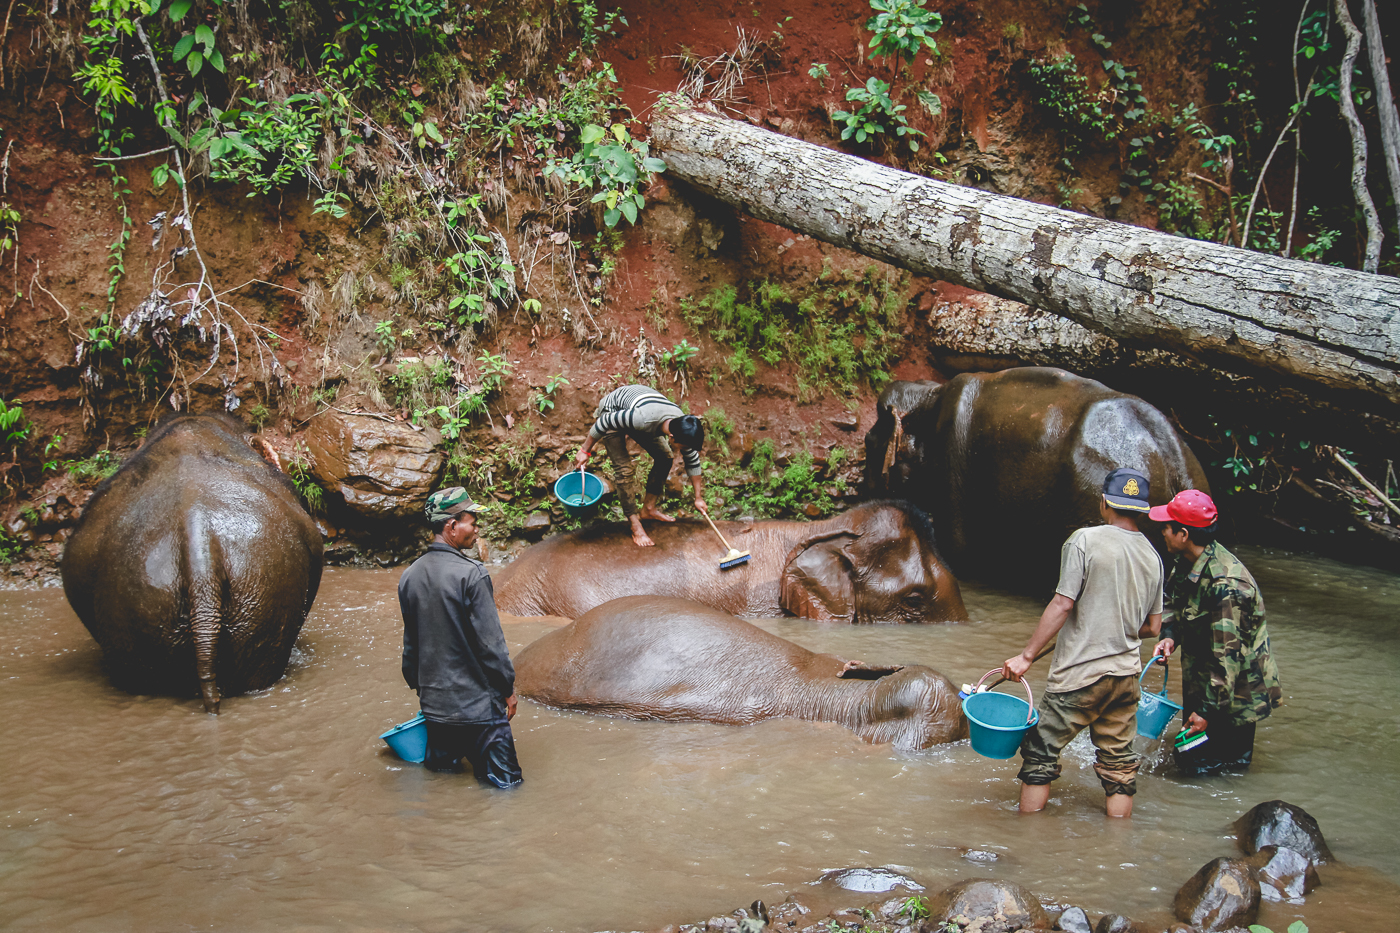 washing elephants vertical.jpg